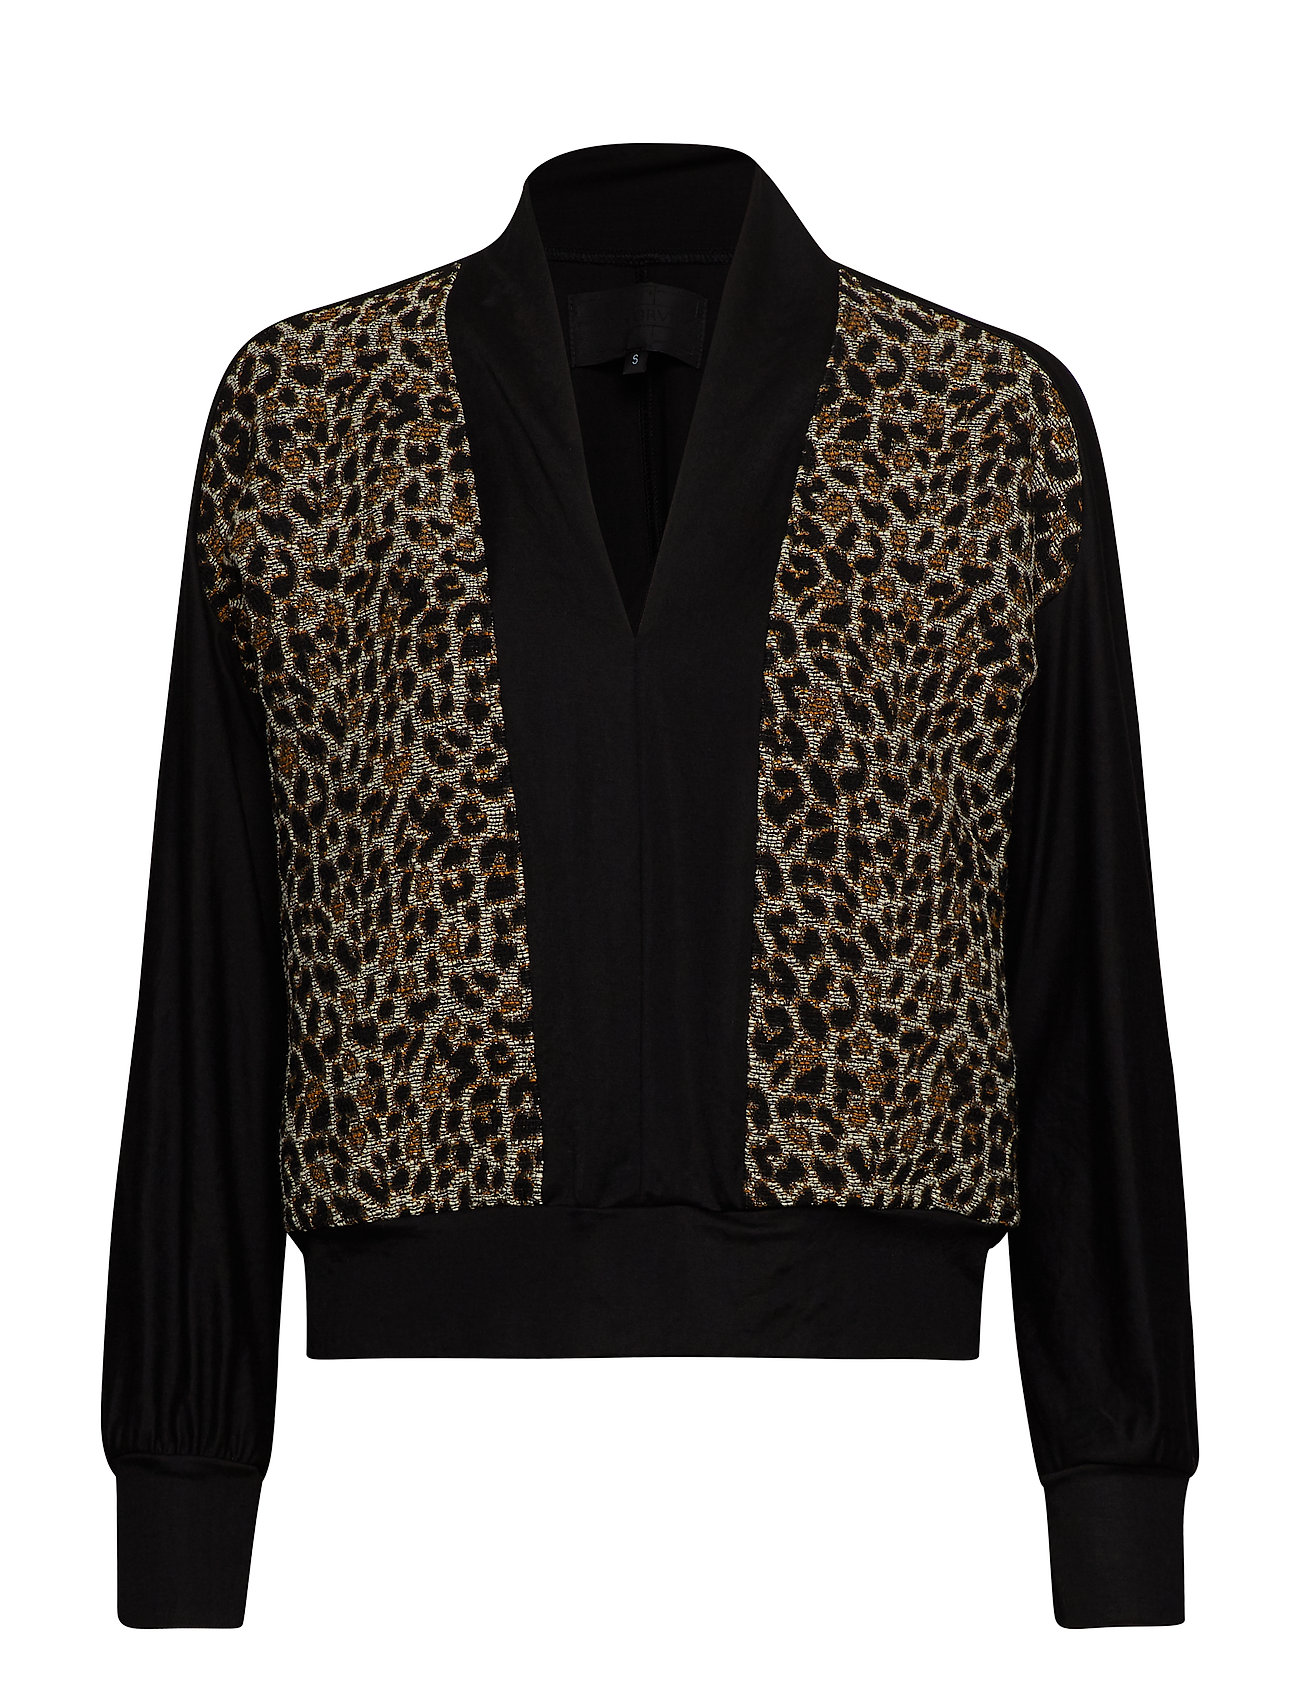 Diana Orving Y-sweater - LEO JACQUARD